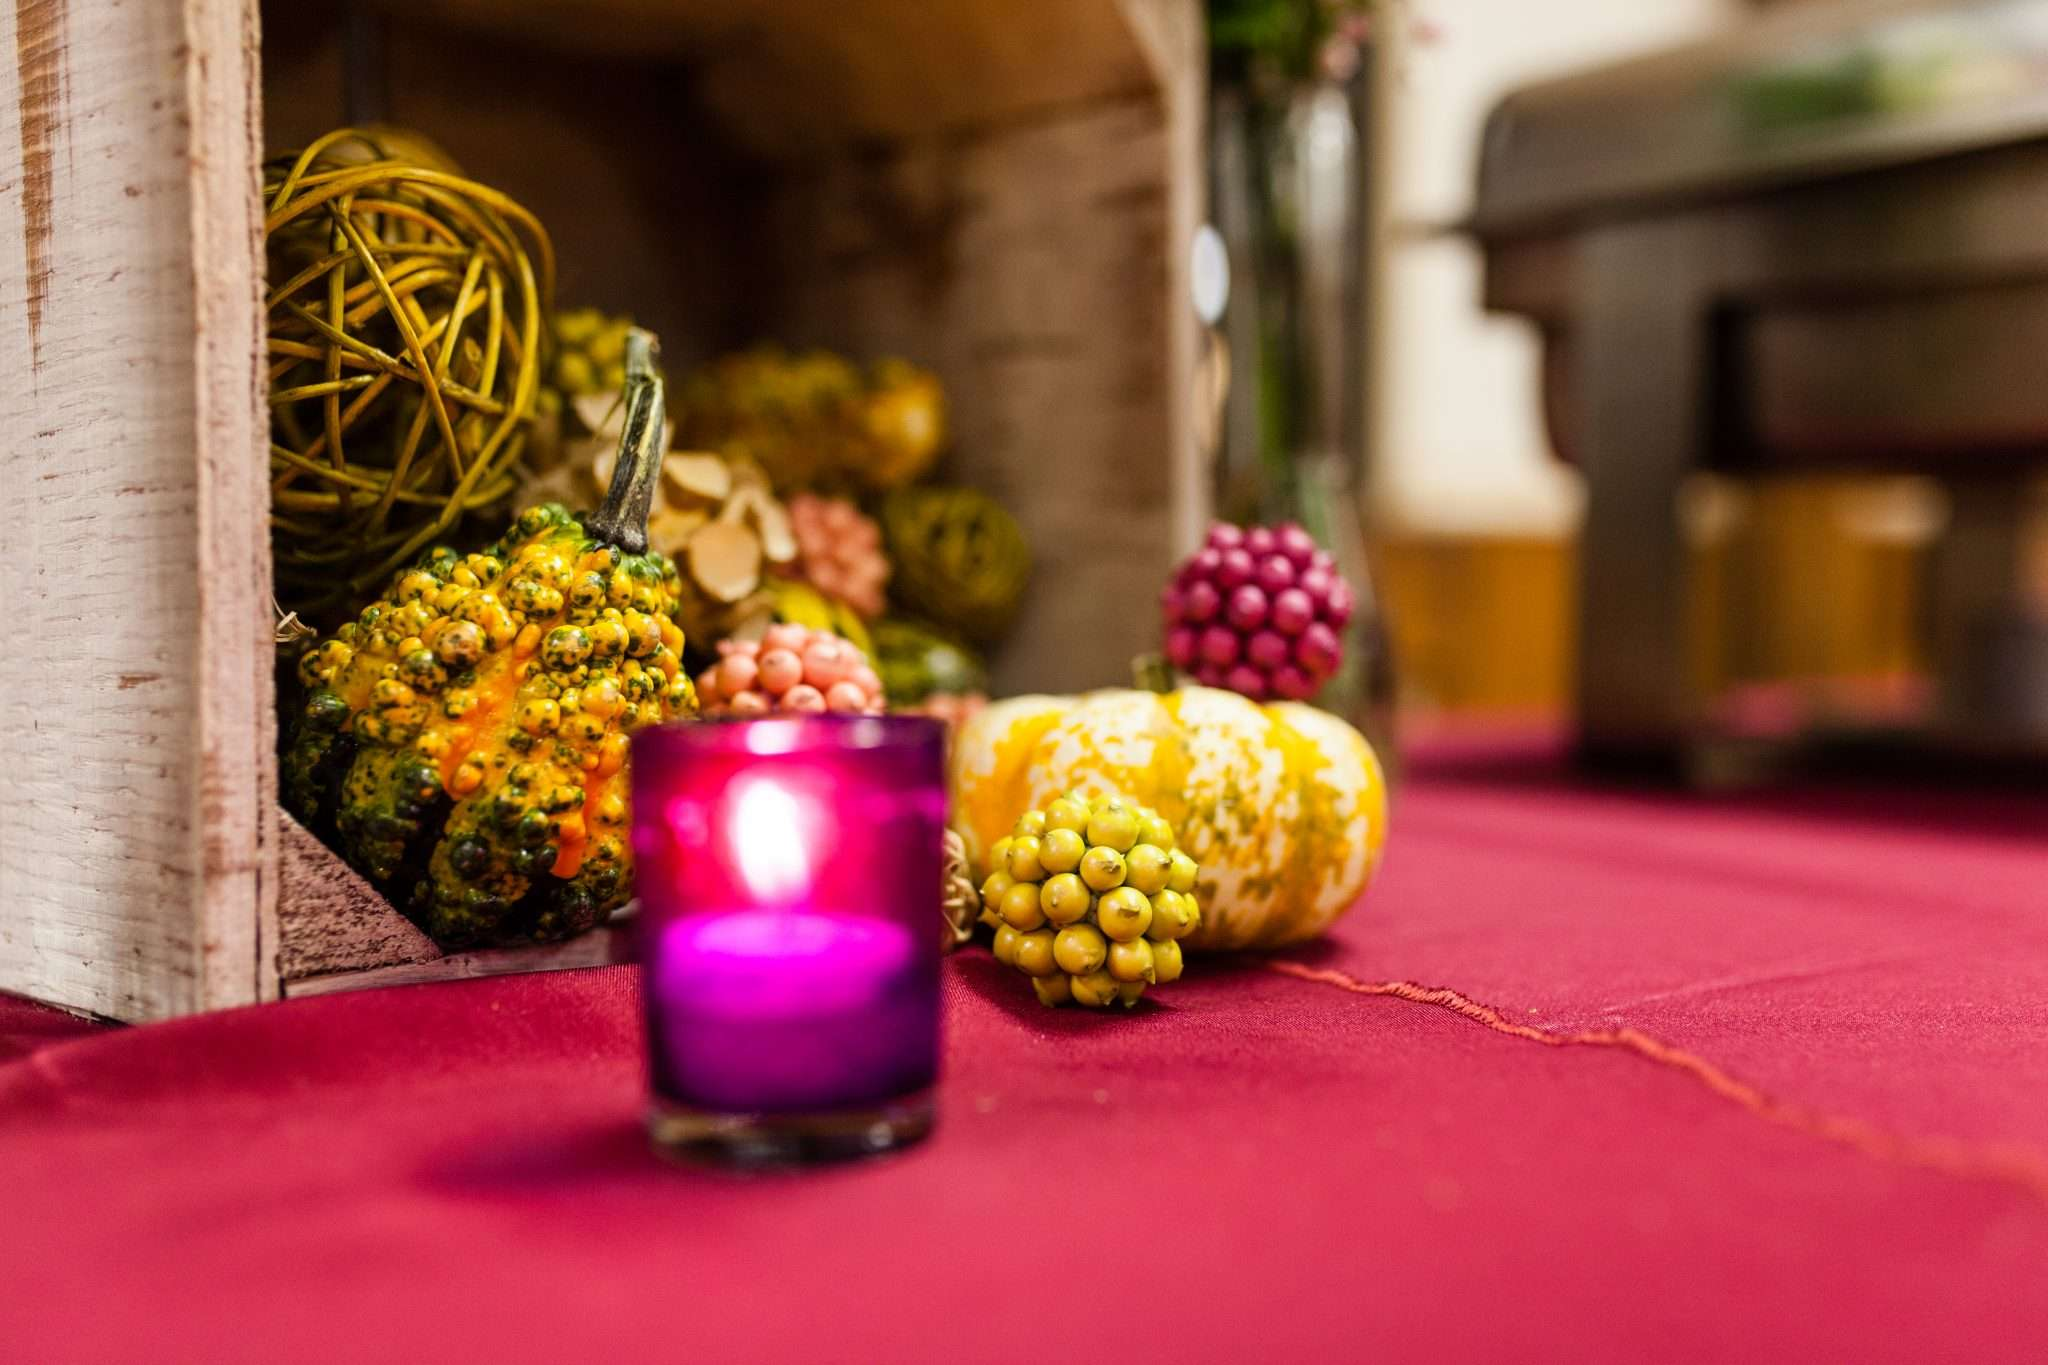 Close up photo of a candle and gourds used to decorate a table